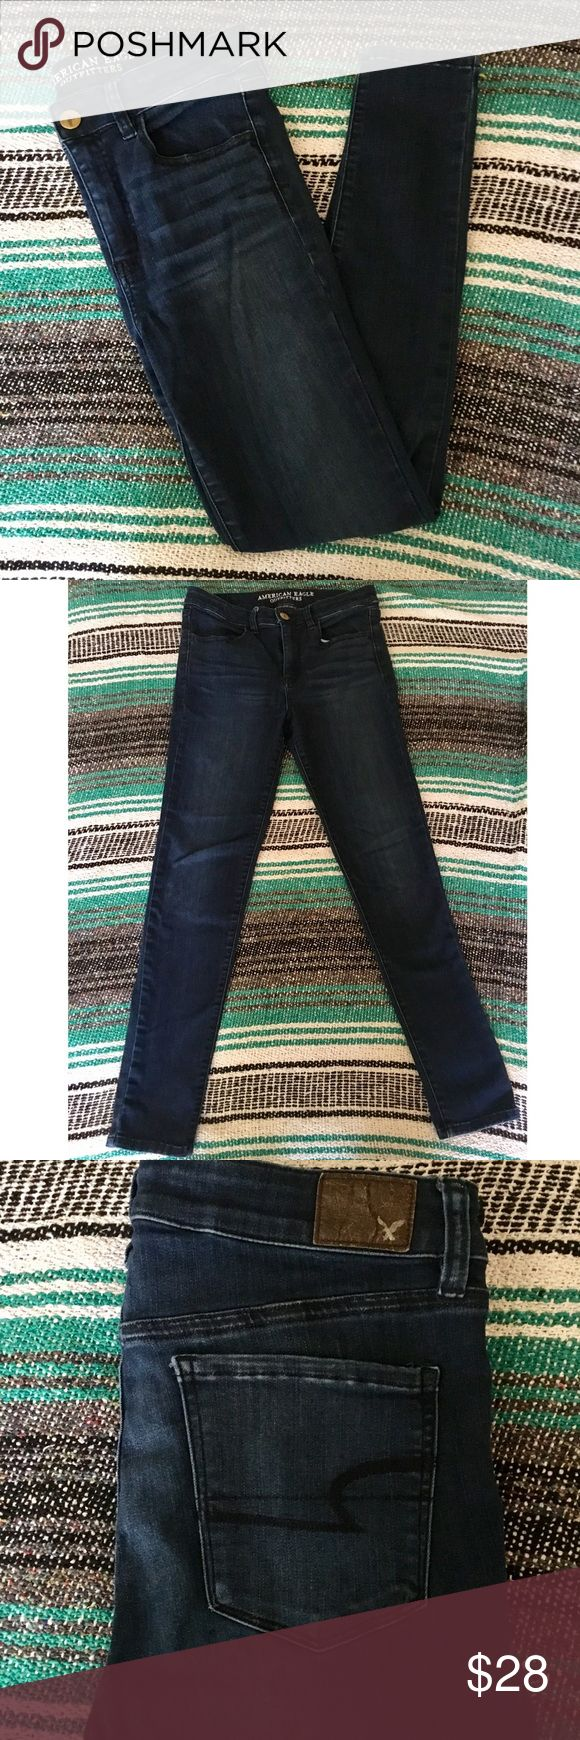 American Eagle Hi Rise Jeggings (size 8) Hi Rise Dark wash Jeggings from American Eagle. Women's size 8! These pants are skinny fit, made of soft super stretch jegging material and are a beautiful dark wash denim! Fits true to size. Only worn 4/5 times, hand washed only and never dried!! In EXCELLENT CONDITION! American Eagle Outfitters Jeans Skinny